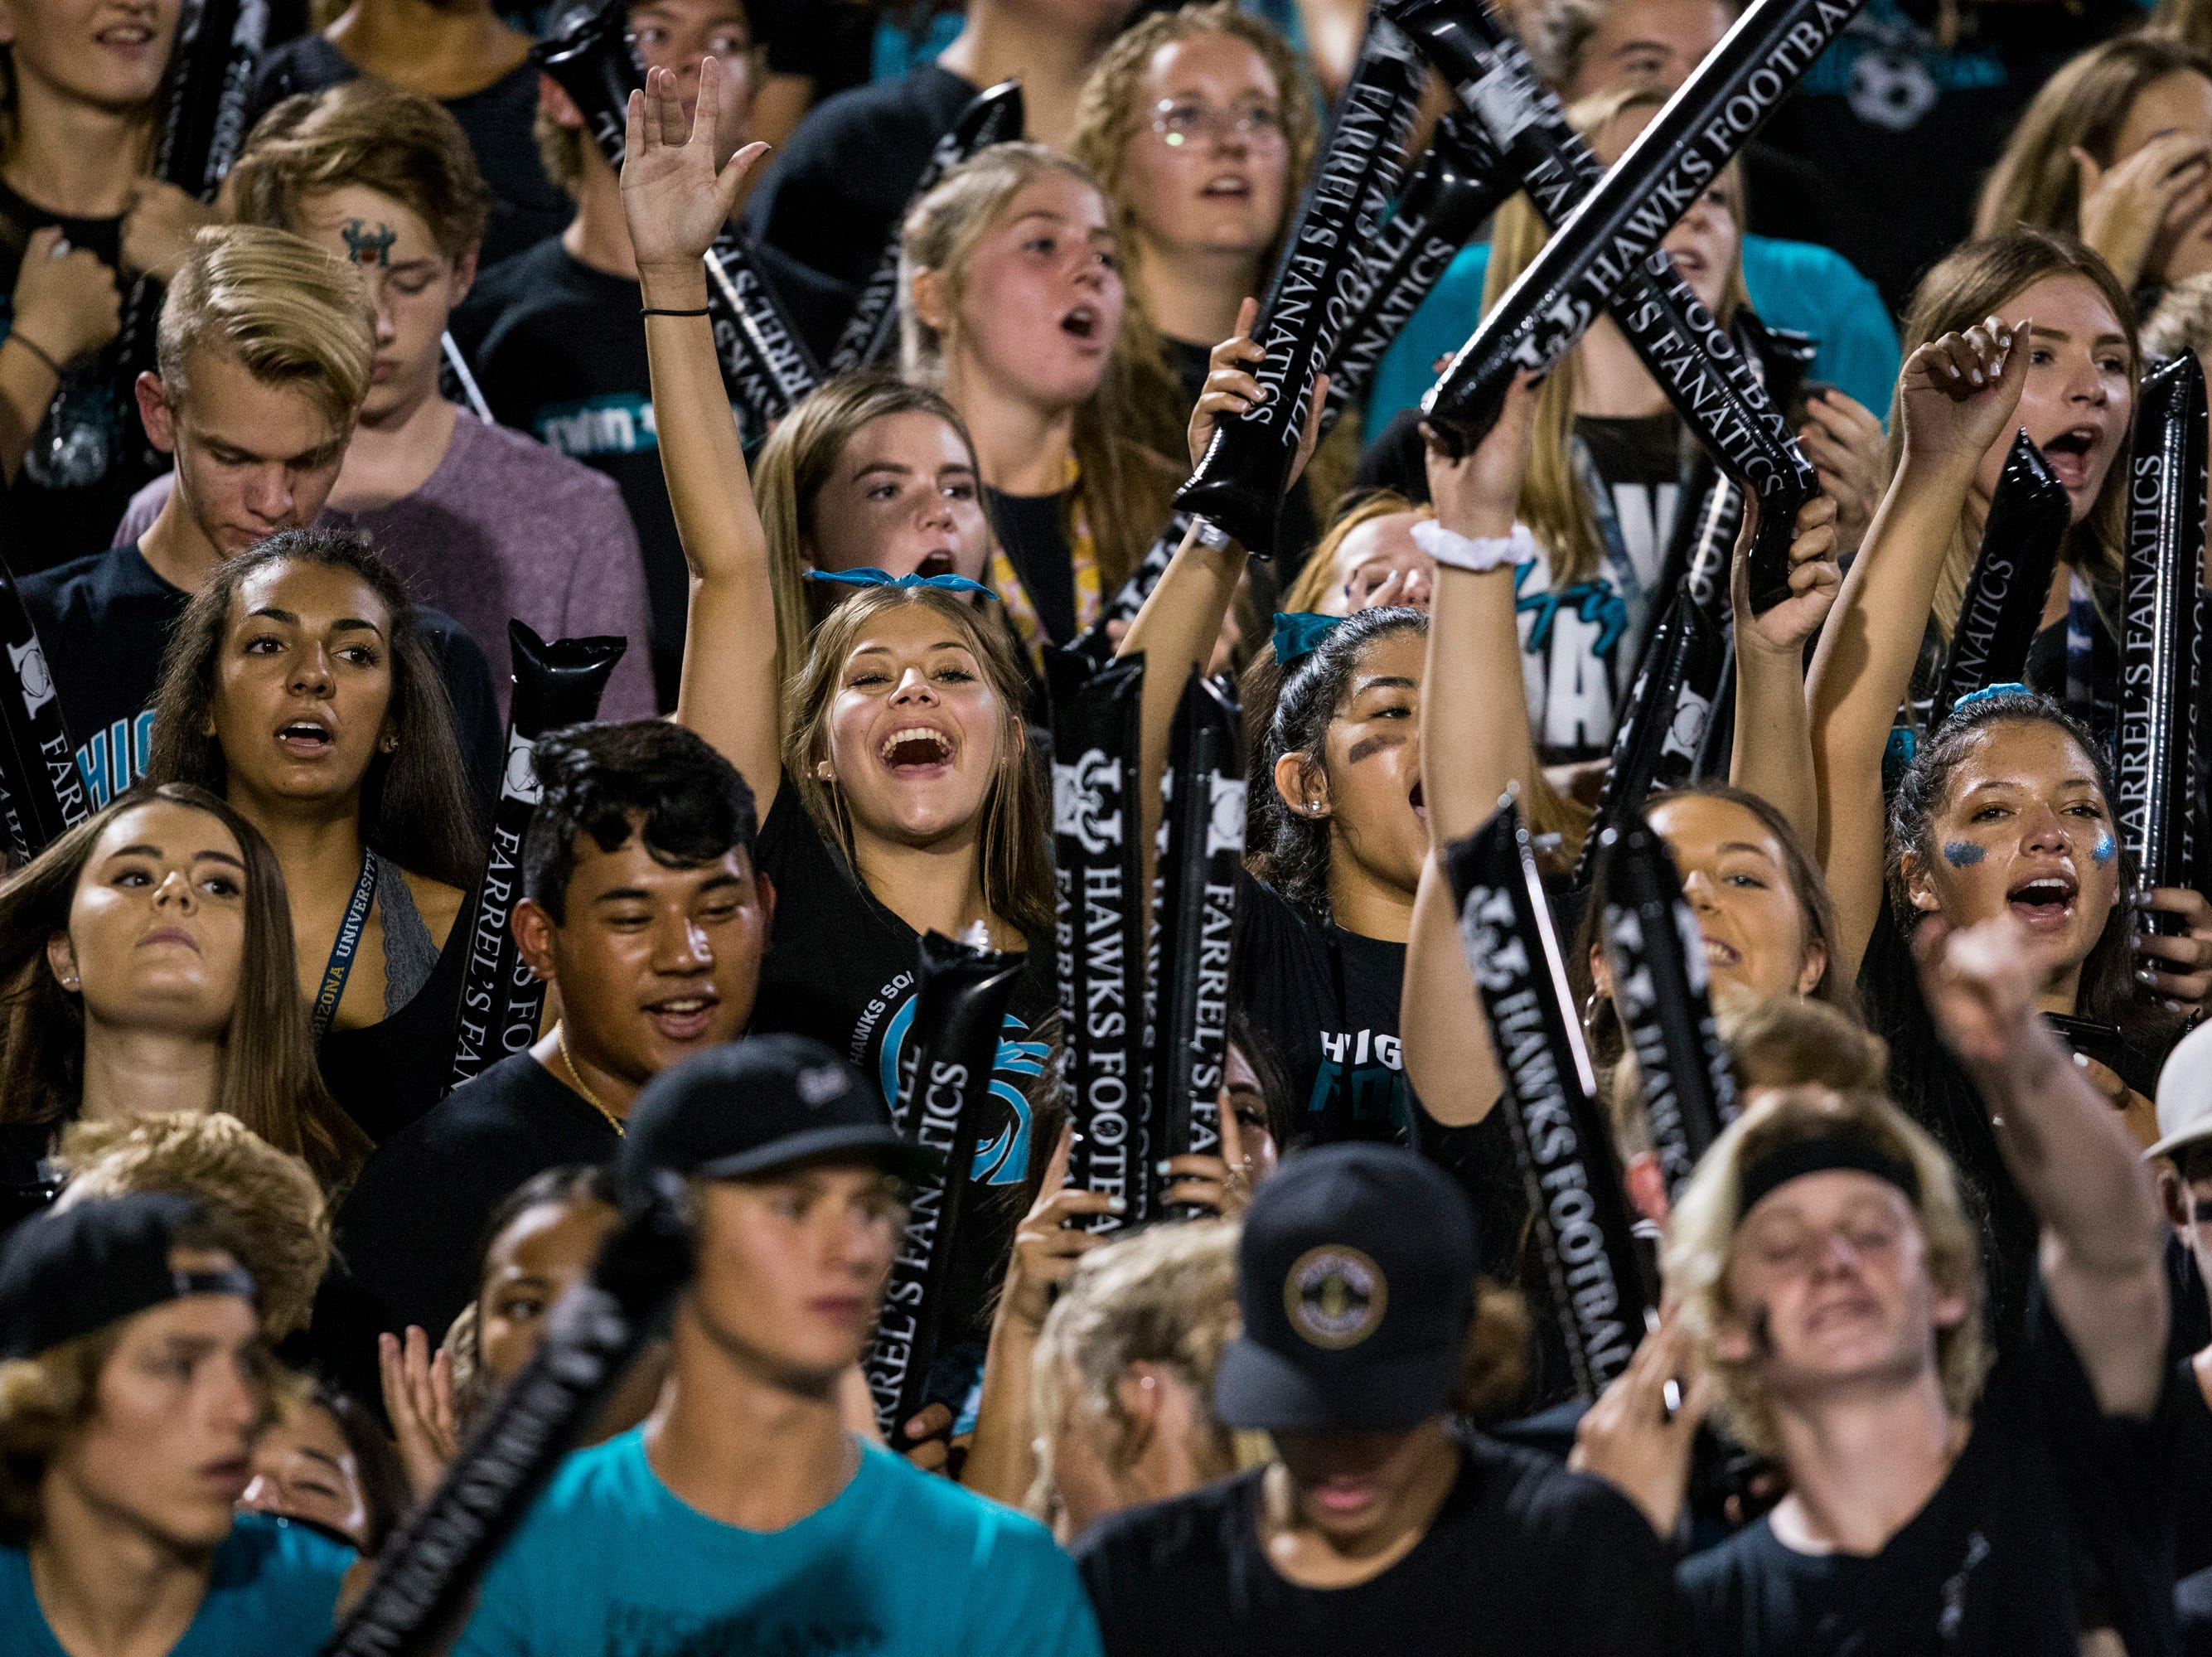 Highland High School football fans cheer during the game against Desert Vista on Friday, Sept. 21, 2018, at Highland High School in Gilbert, Ariz.   #azhsfb